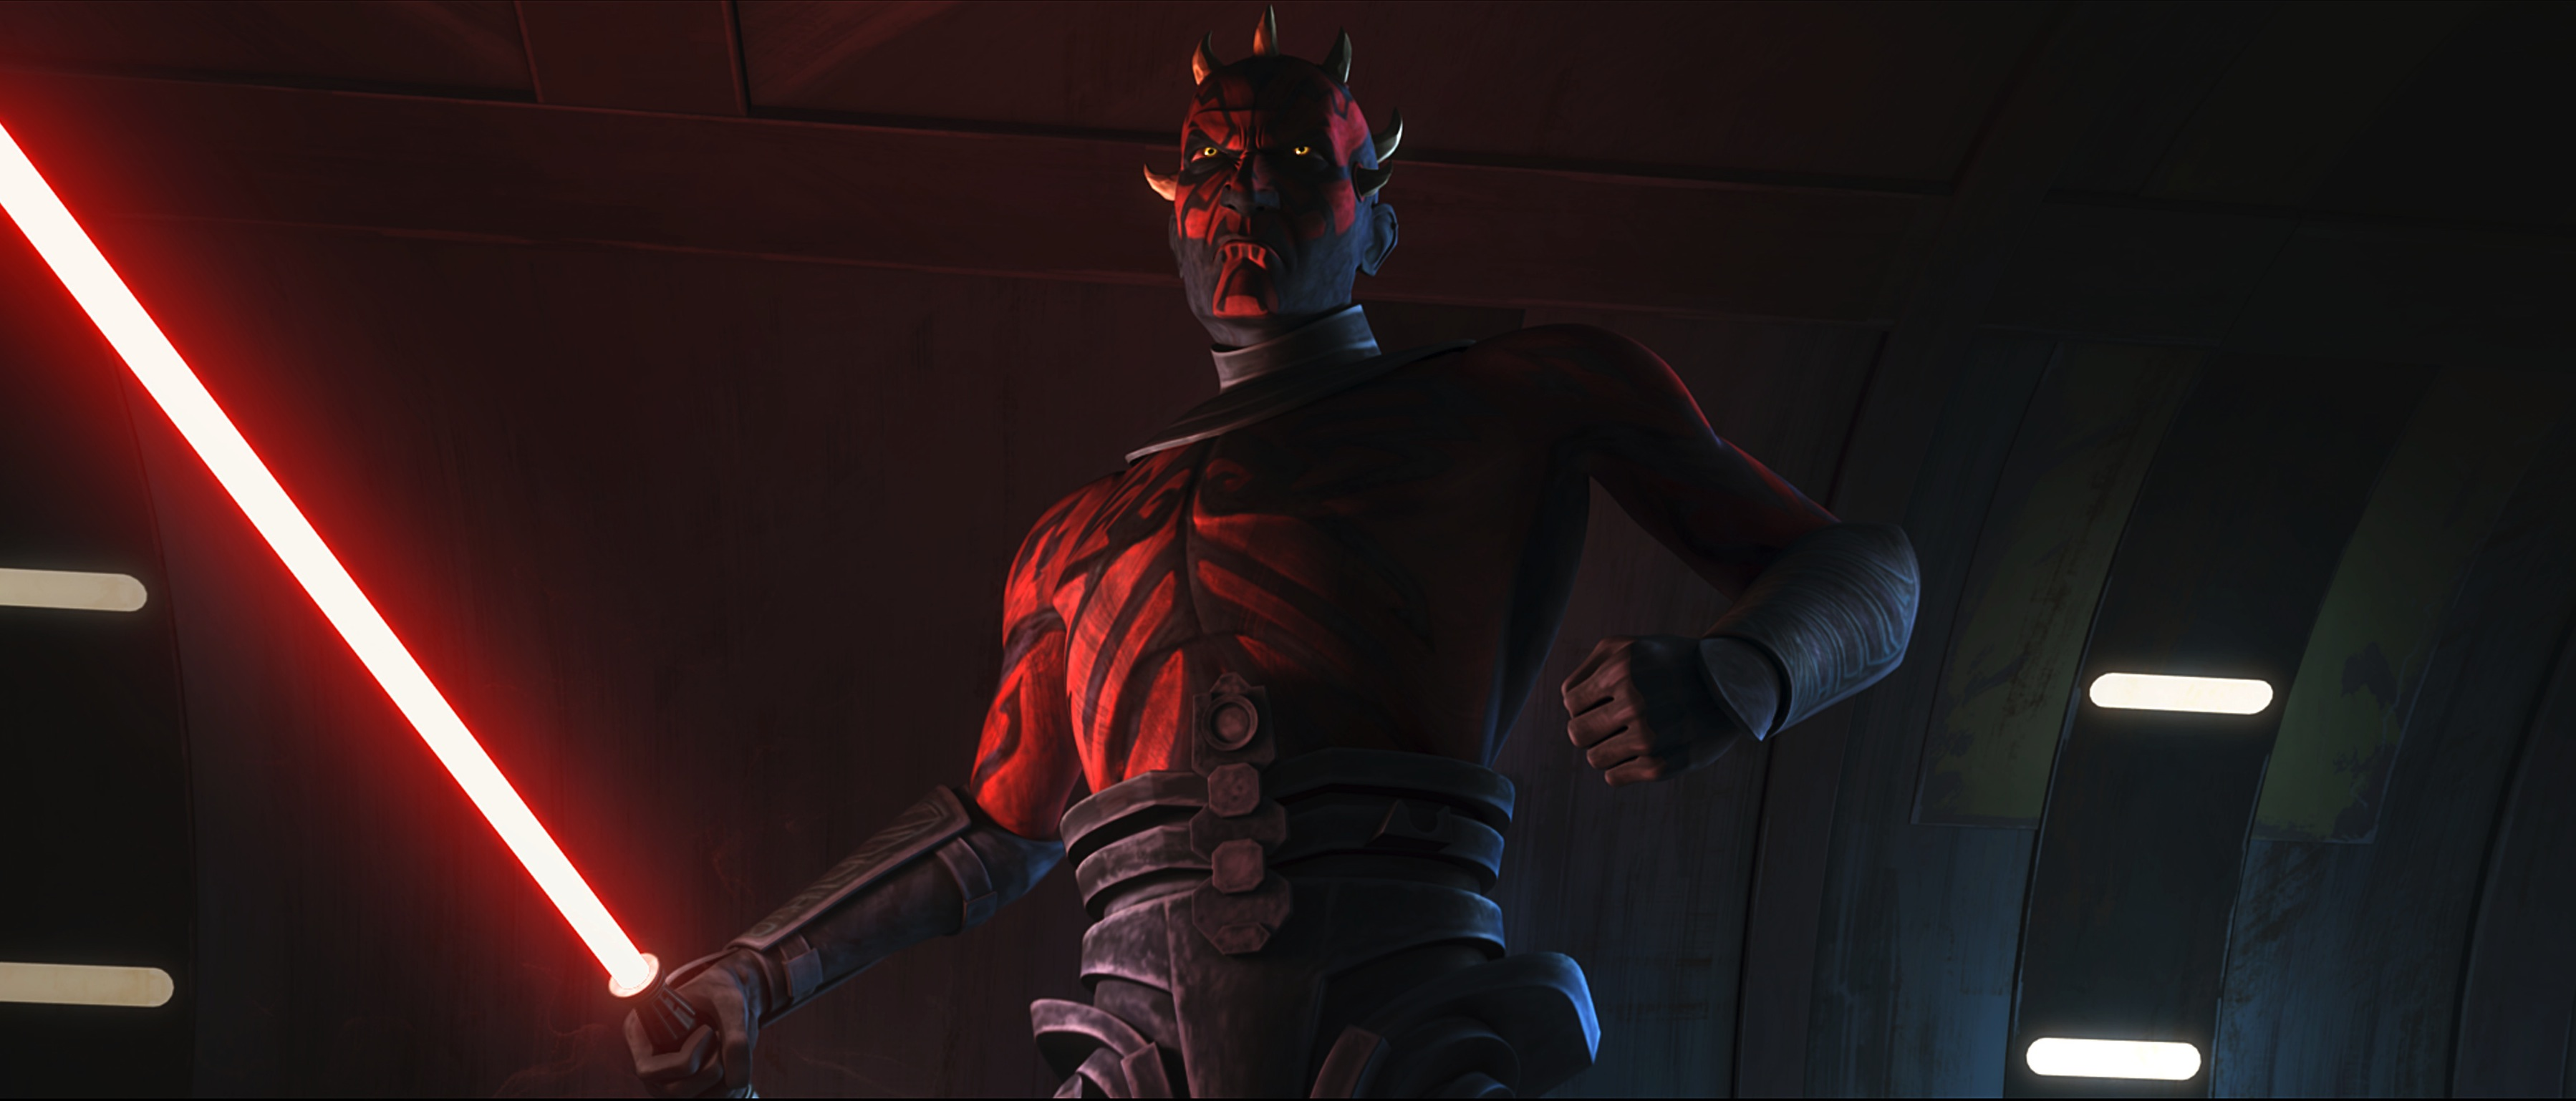 Star Wars Clone Wars Mini Series When The Star Wars The Clone